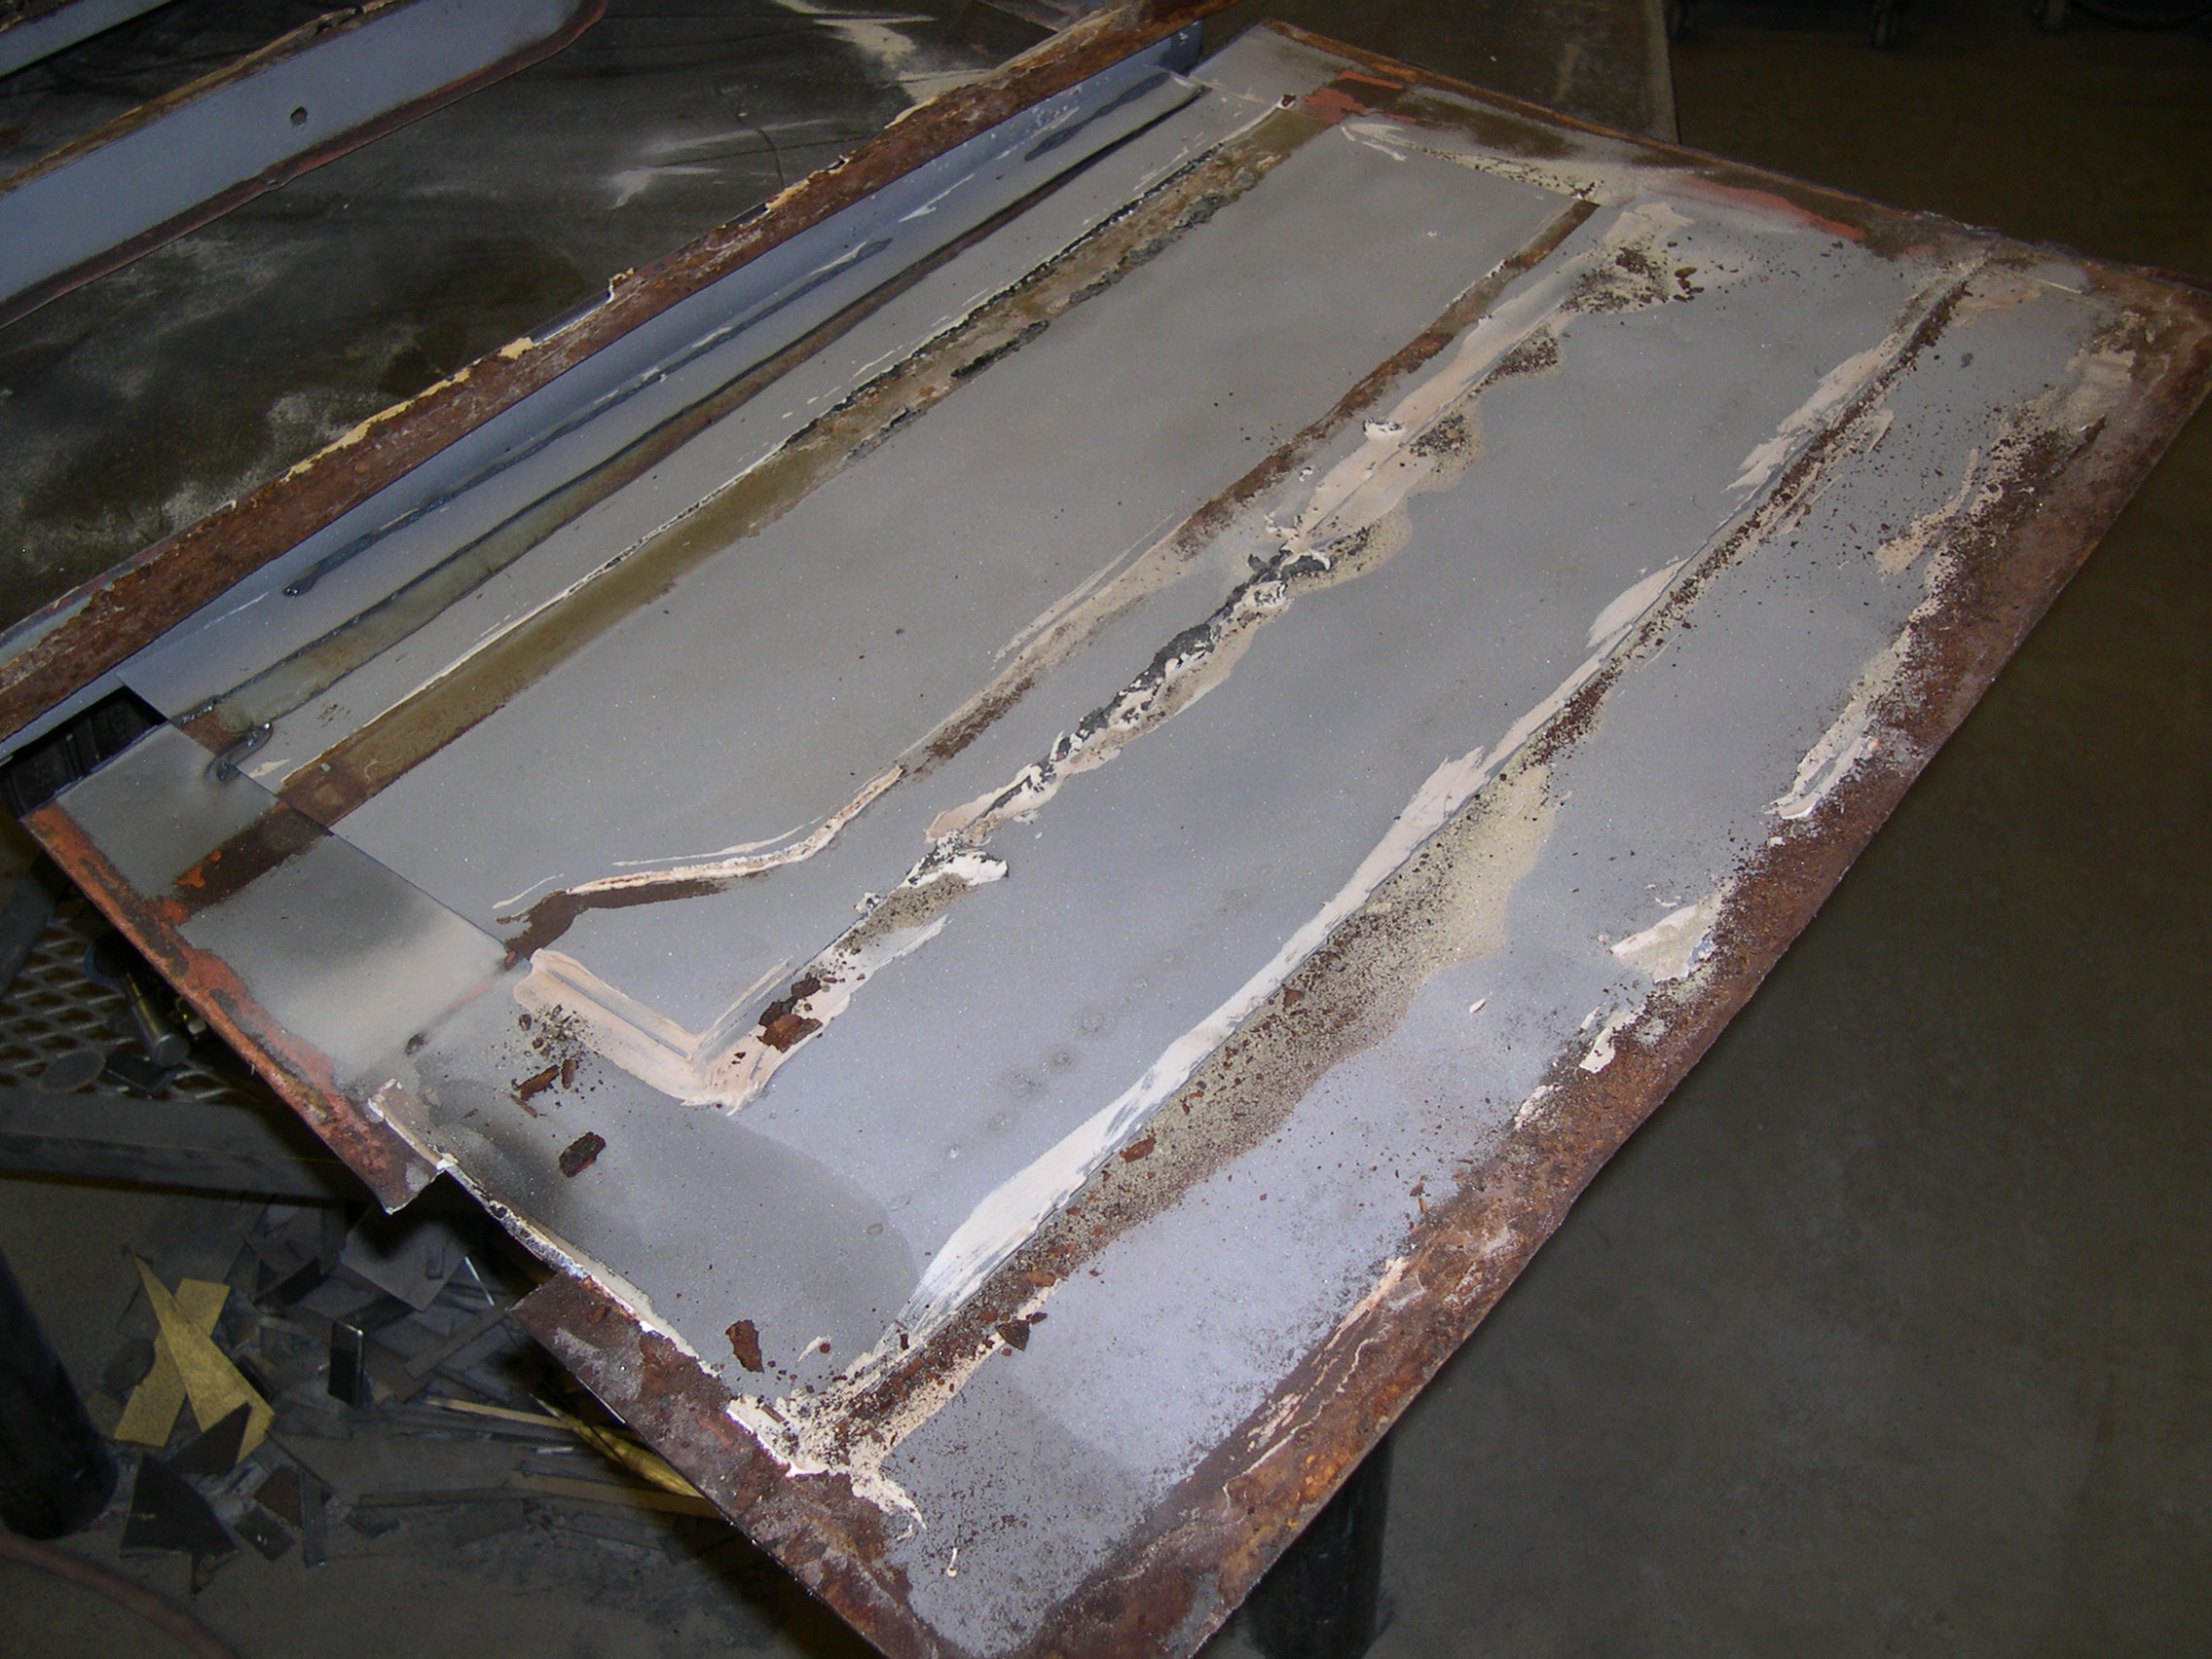 """BEFORE: Here's how the old """"restoration"""" of the door skins looked. Lap welded patch panels covered in seam sealer on the inside and lots of Bondo on the outside."""